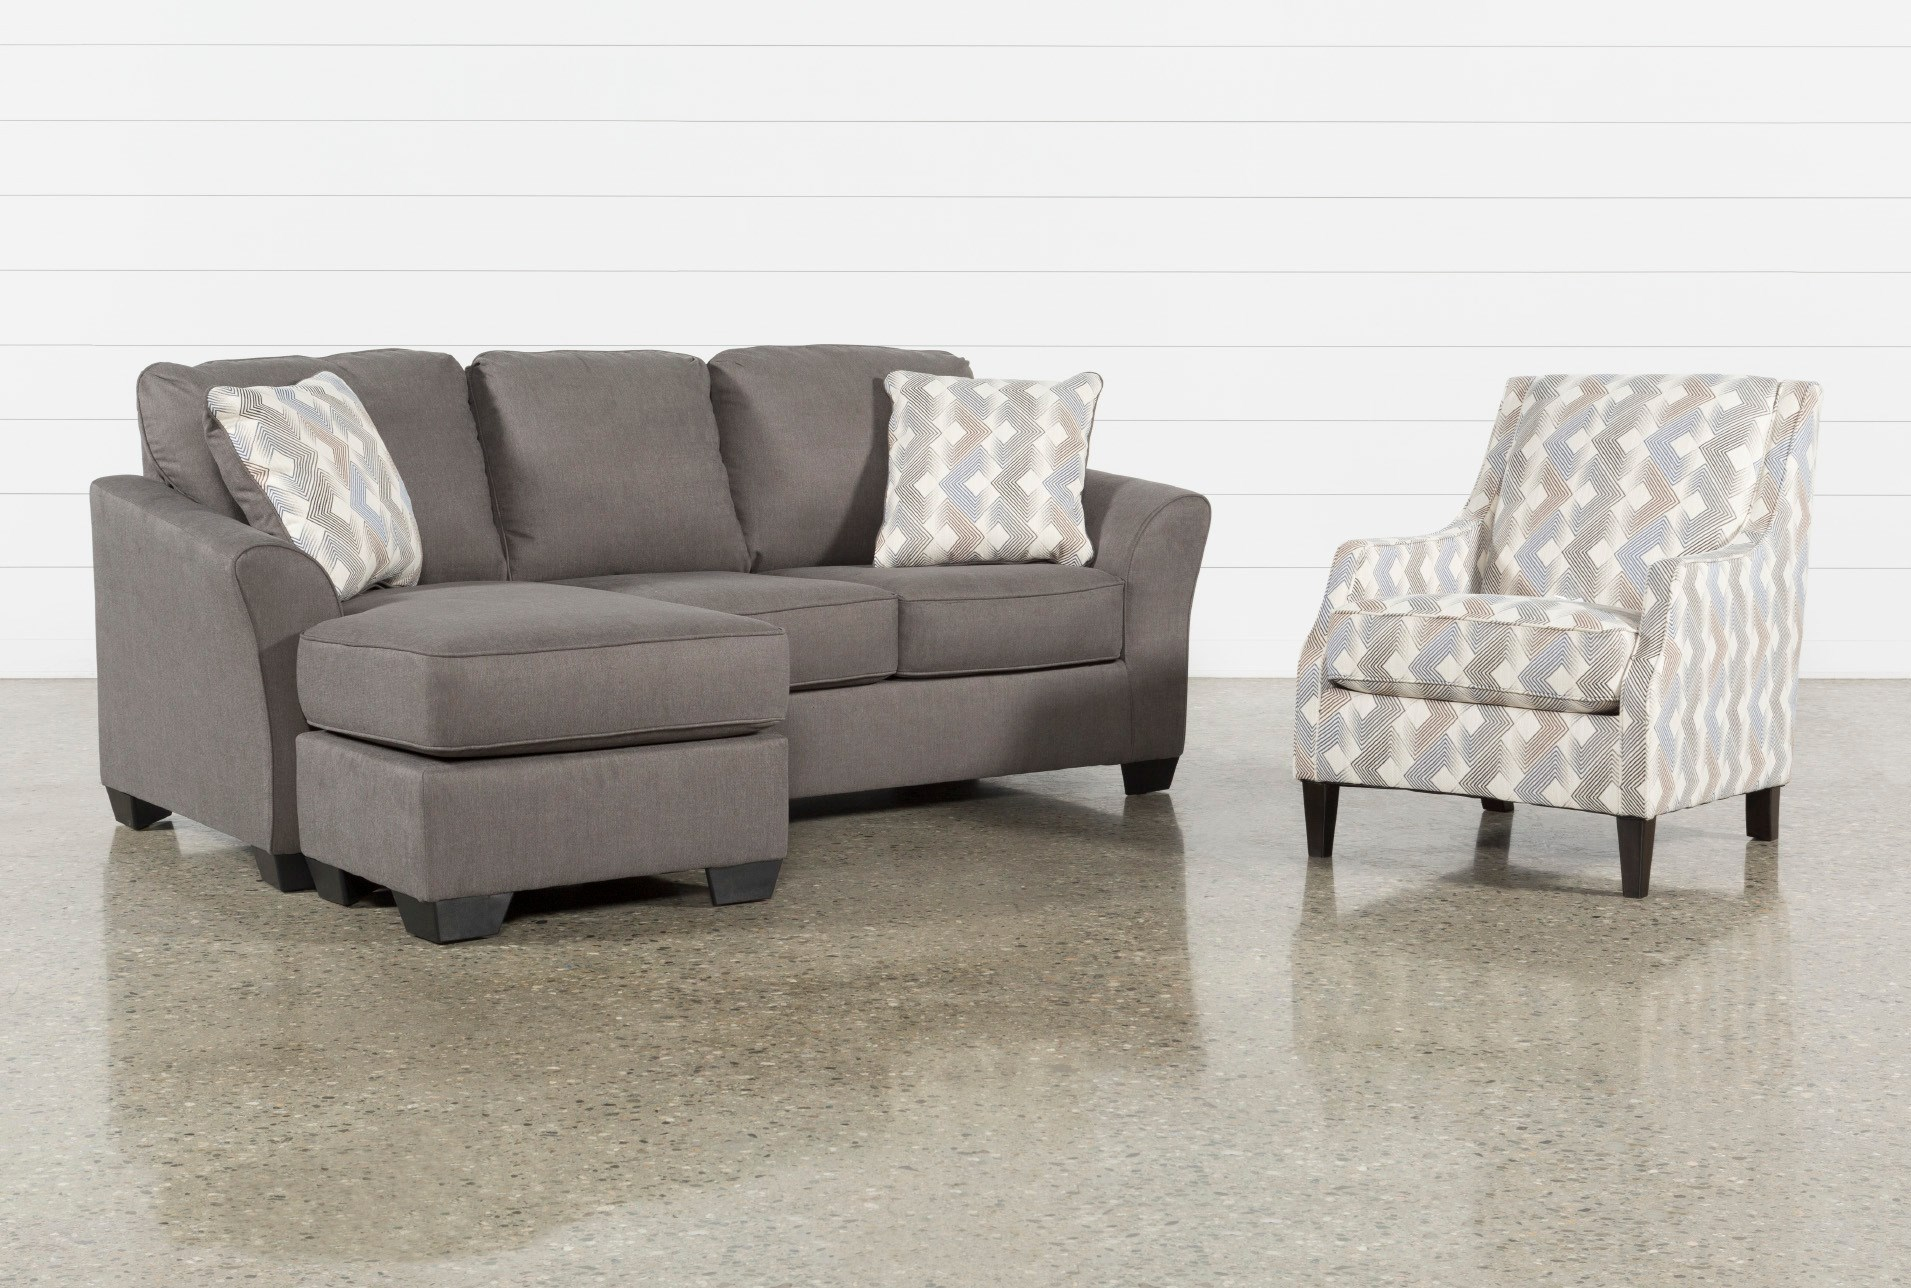 Tucker 2 Piece Living Room Set With Accent Chair